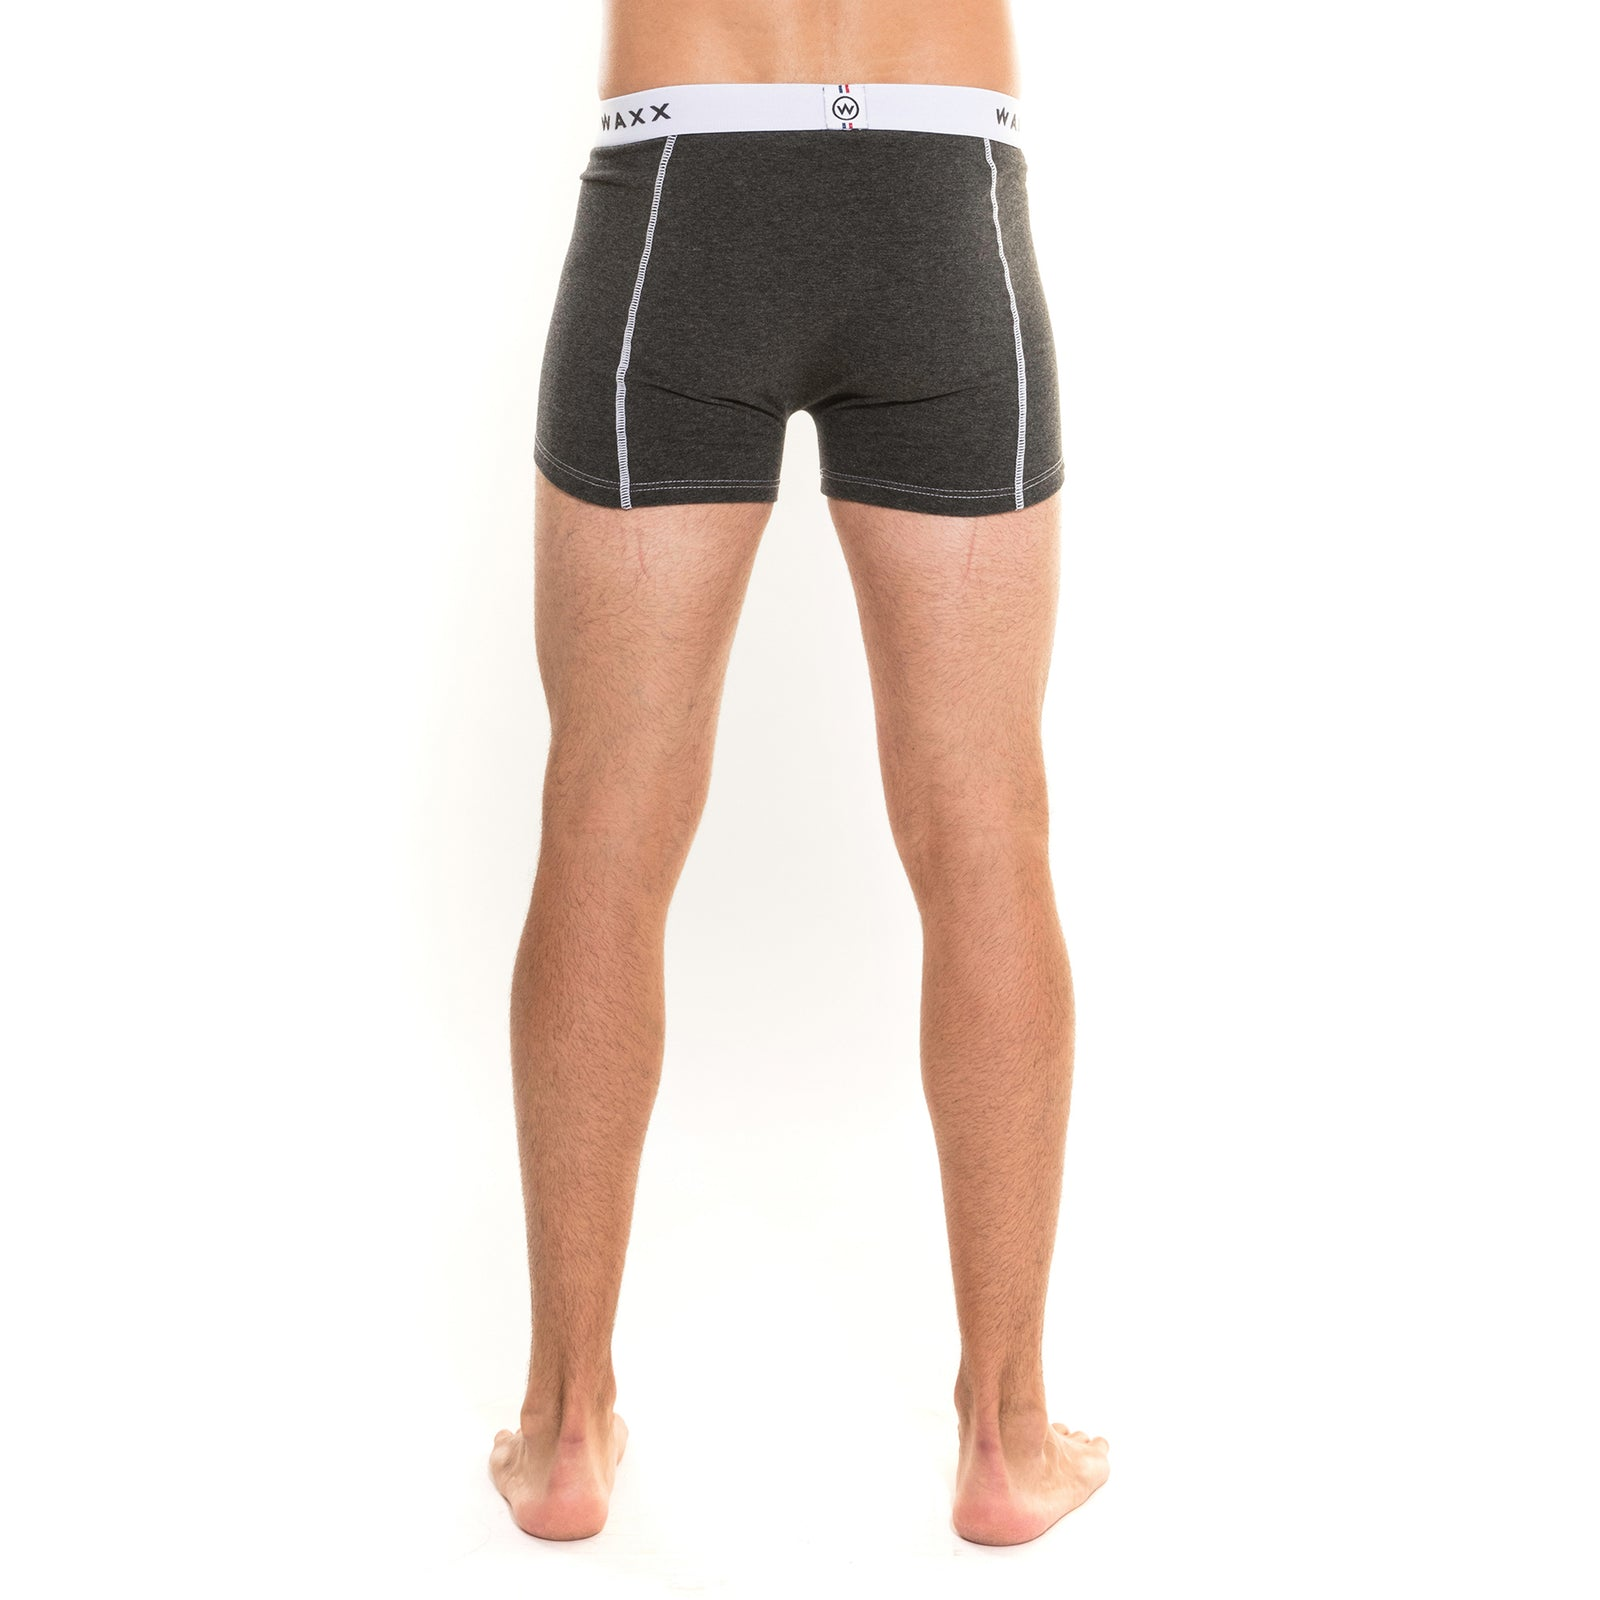 Waxx Men's Cotton Trunk Boxer Anthracite